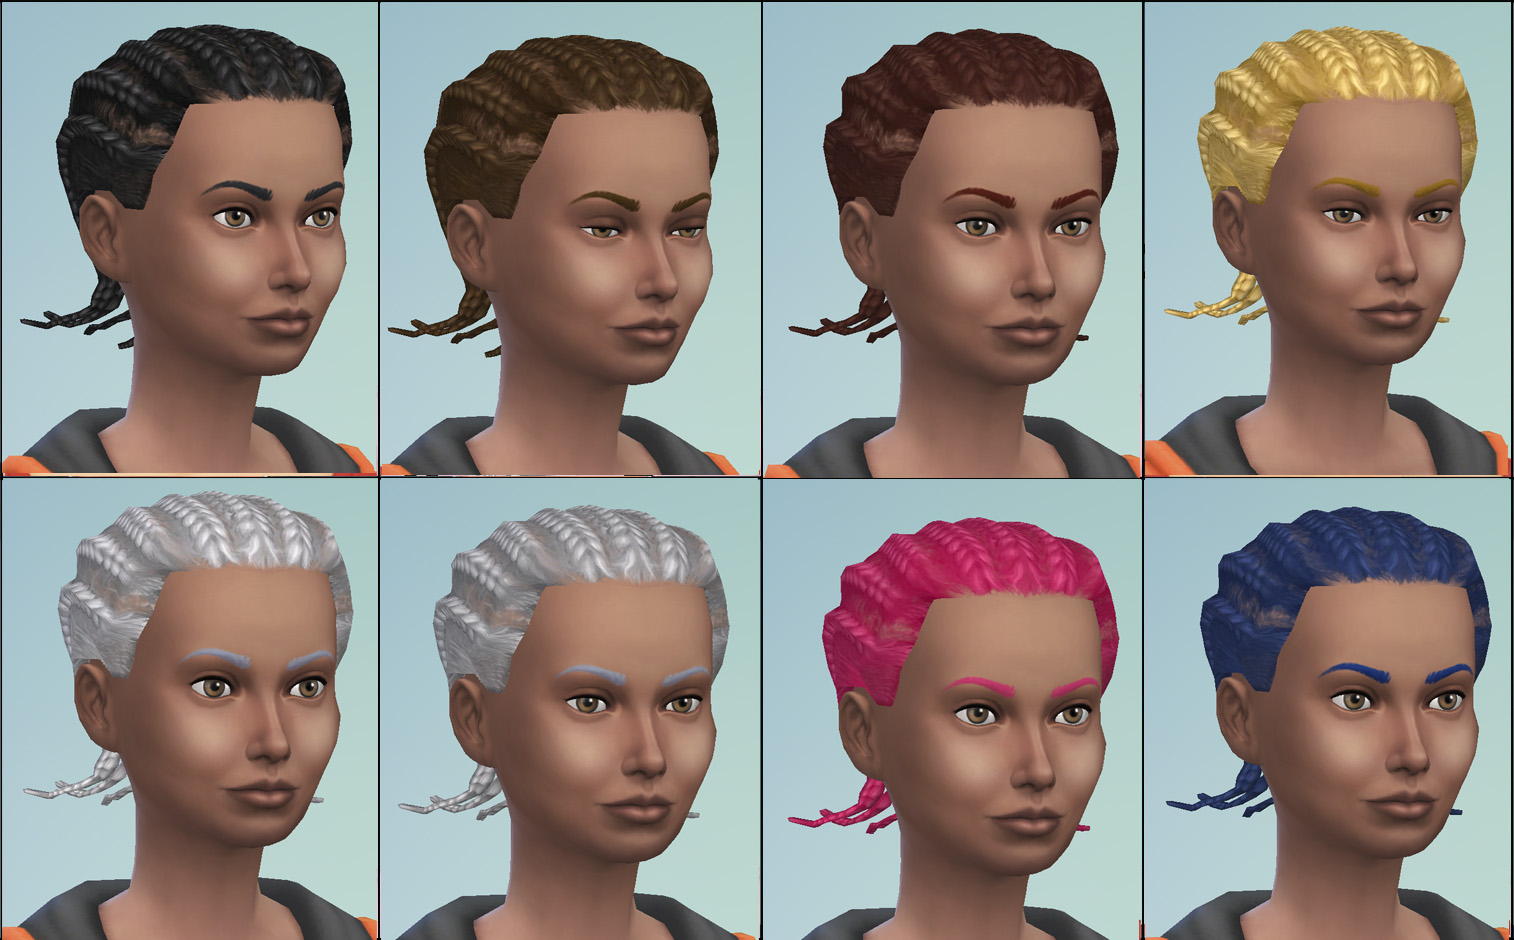 Magnificent Mod The Sims S2 Male Cornrows Unisex Conversion Hairstyle Inspiration Daily Dogsangcom